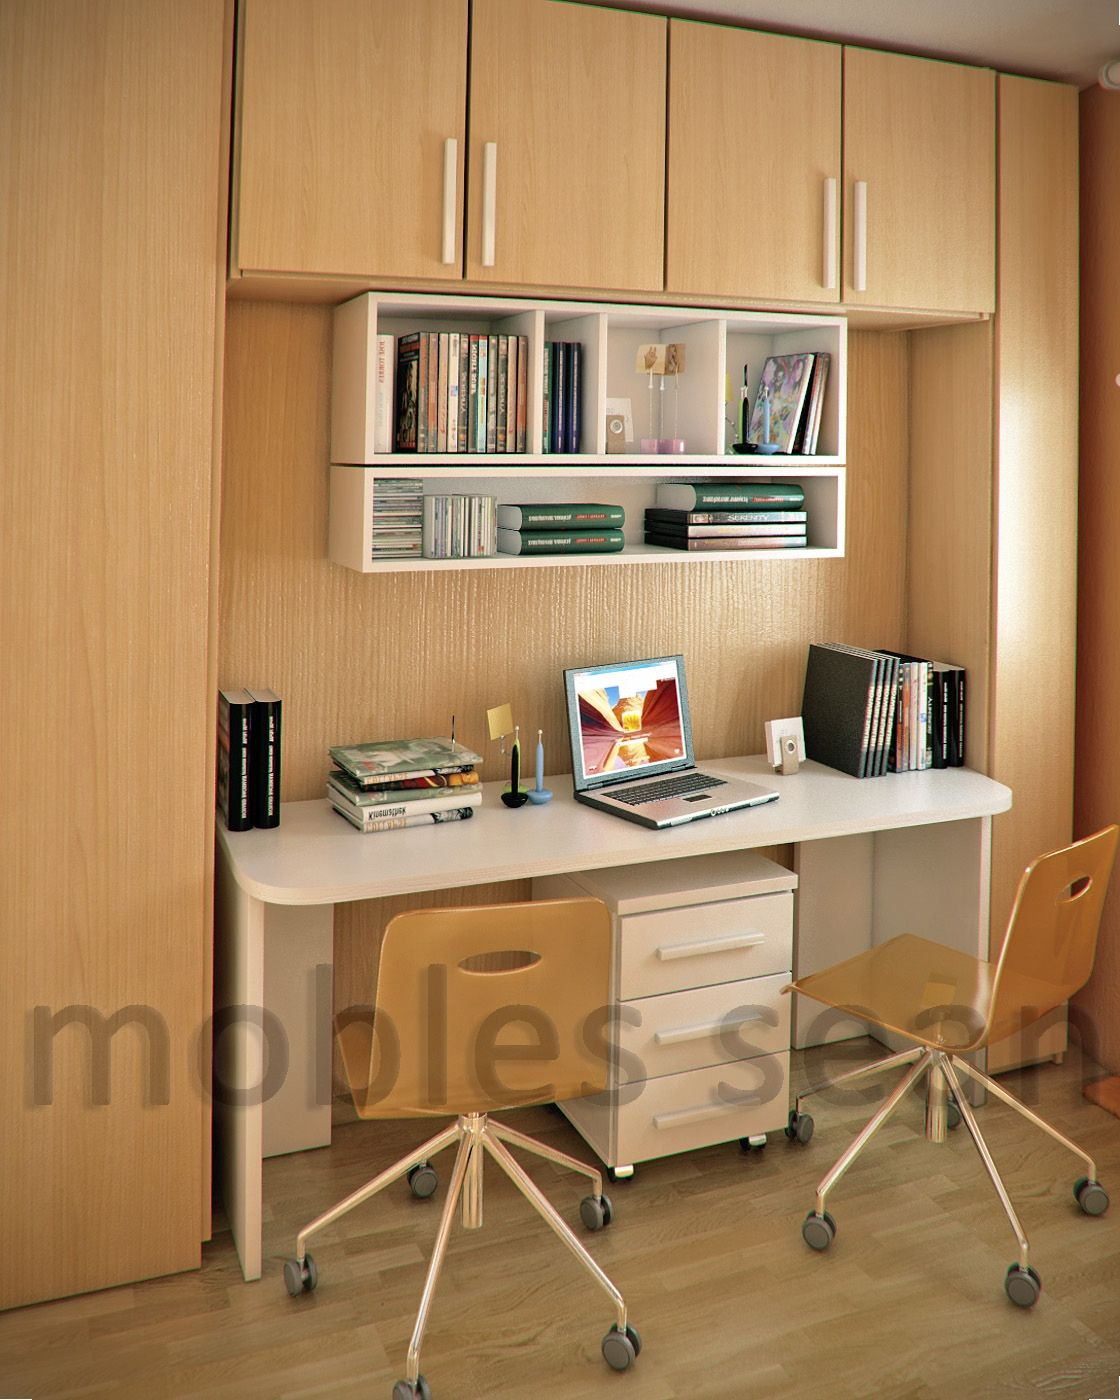 Superbe Small Study Room Area With Wood Storage White Wall Shelves Computer Desk  And Swivel Chairs